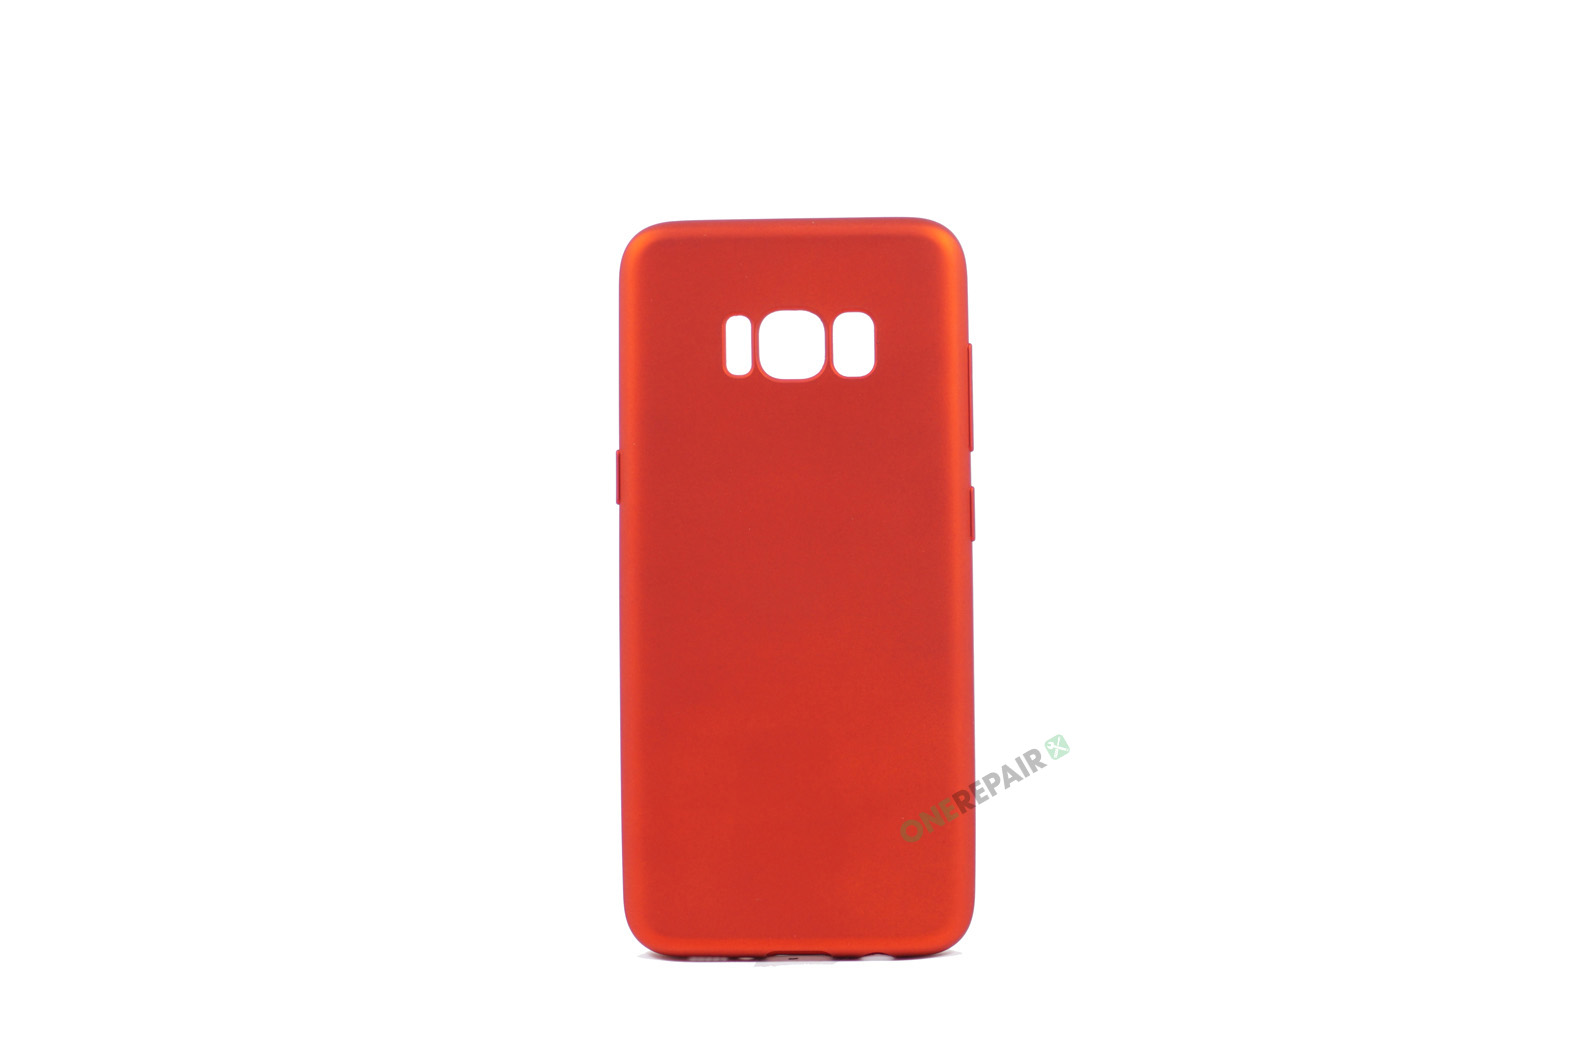 350733_Samsung_S8_2_lags_Bagcover_Cover_Roed_OneRepair_WM_00001